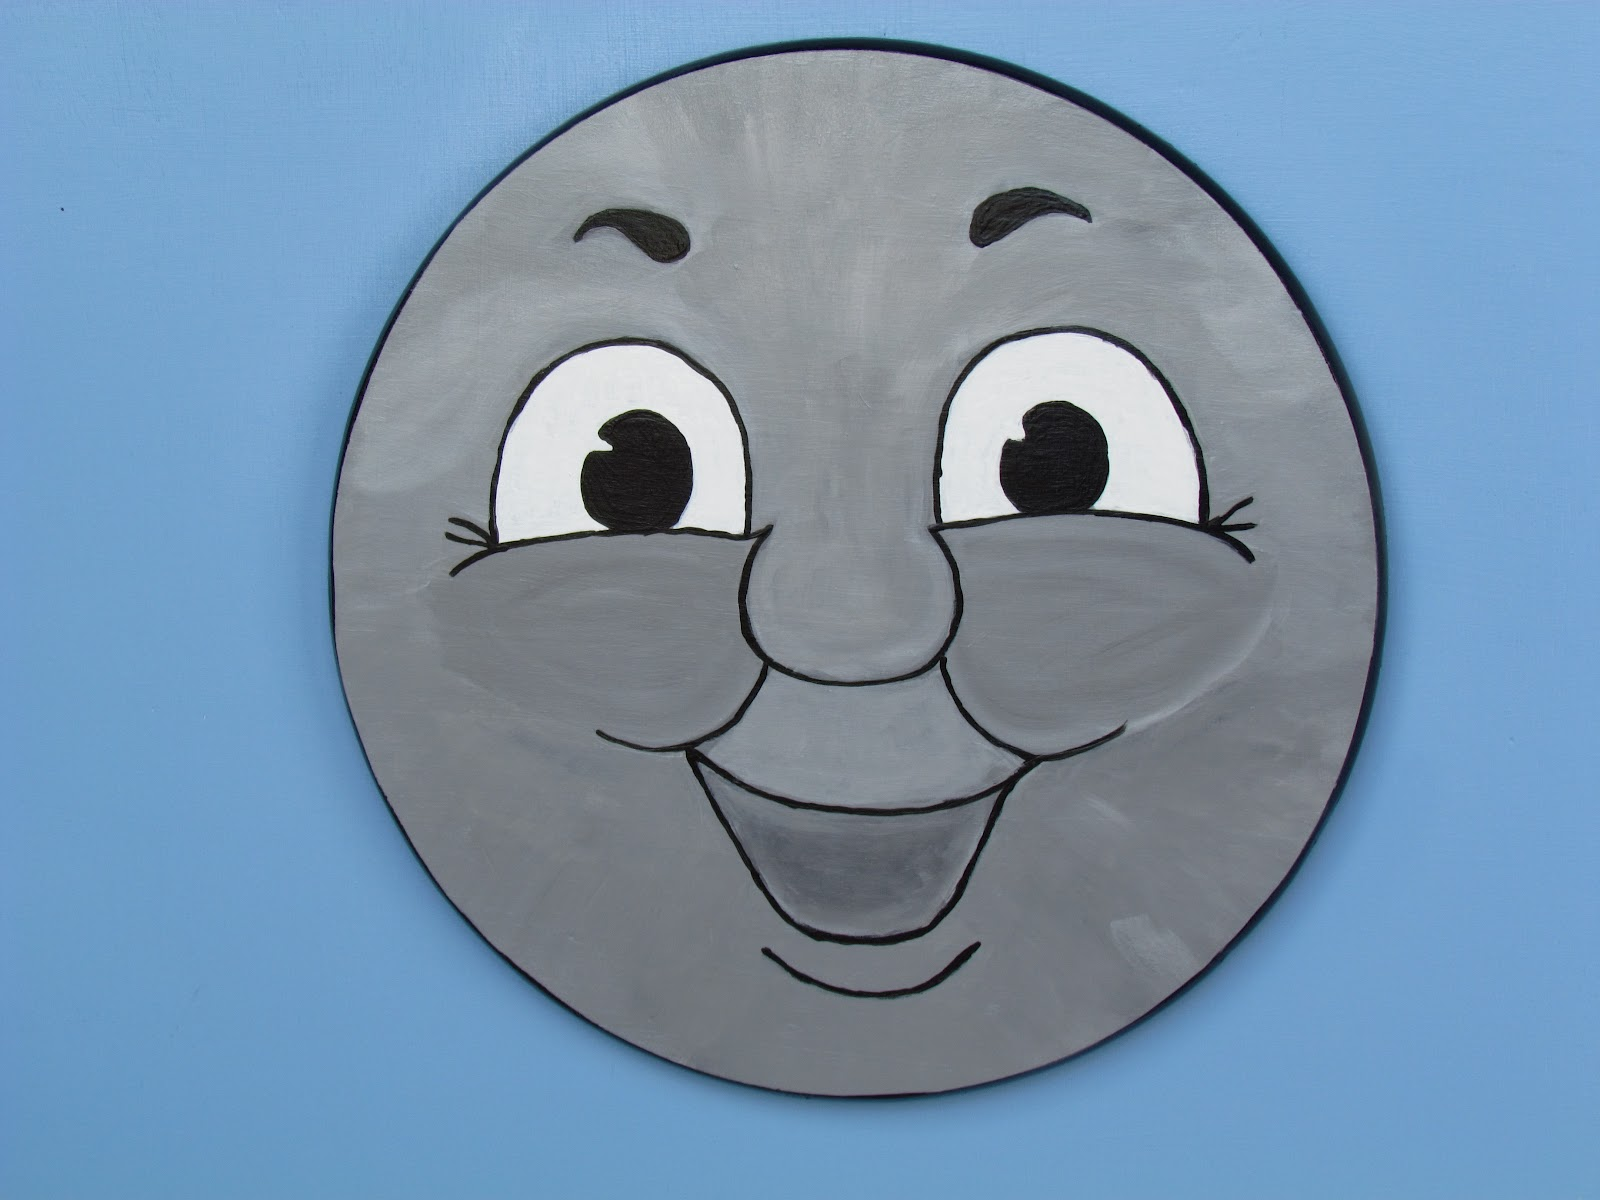 Thomas The Train Face Cut Out The face is painted on a round